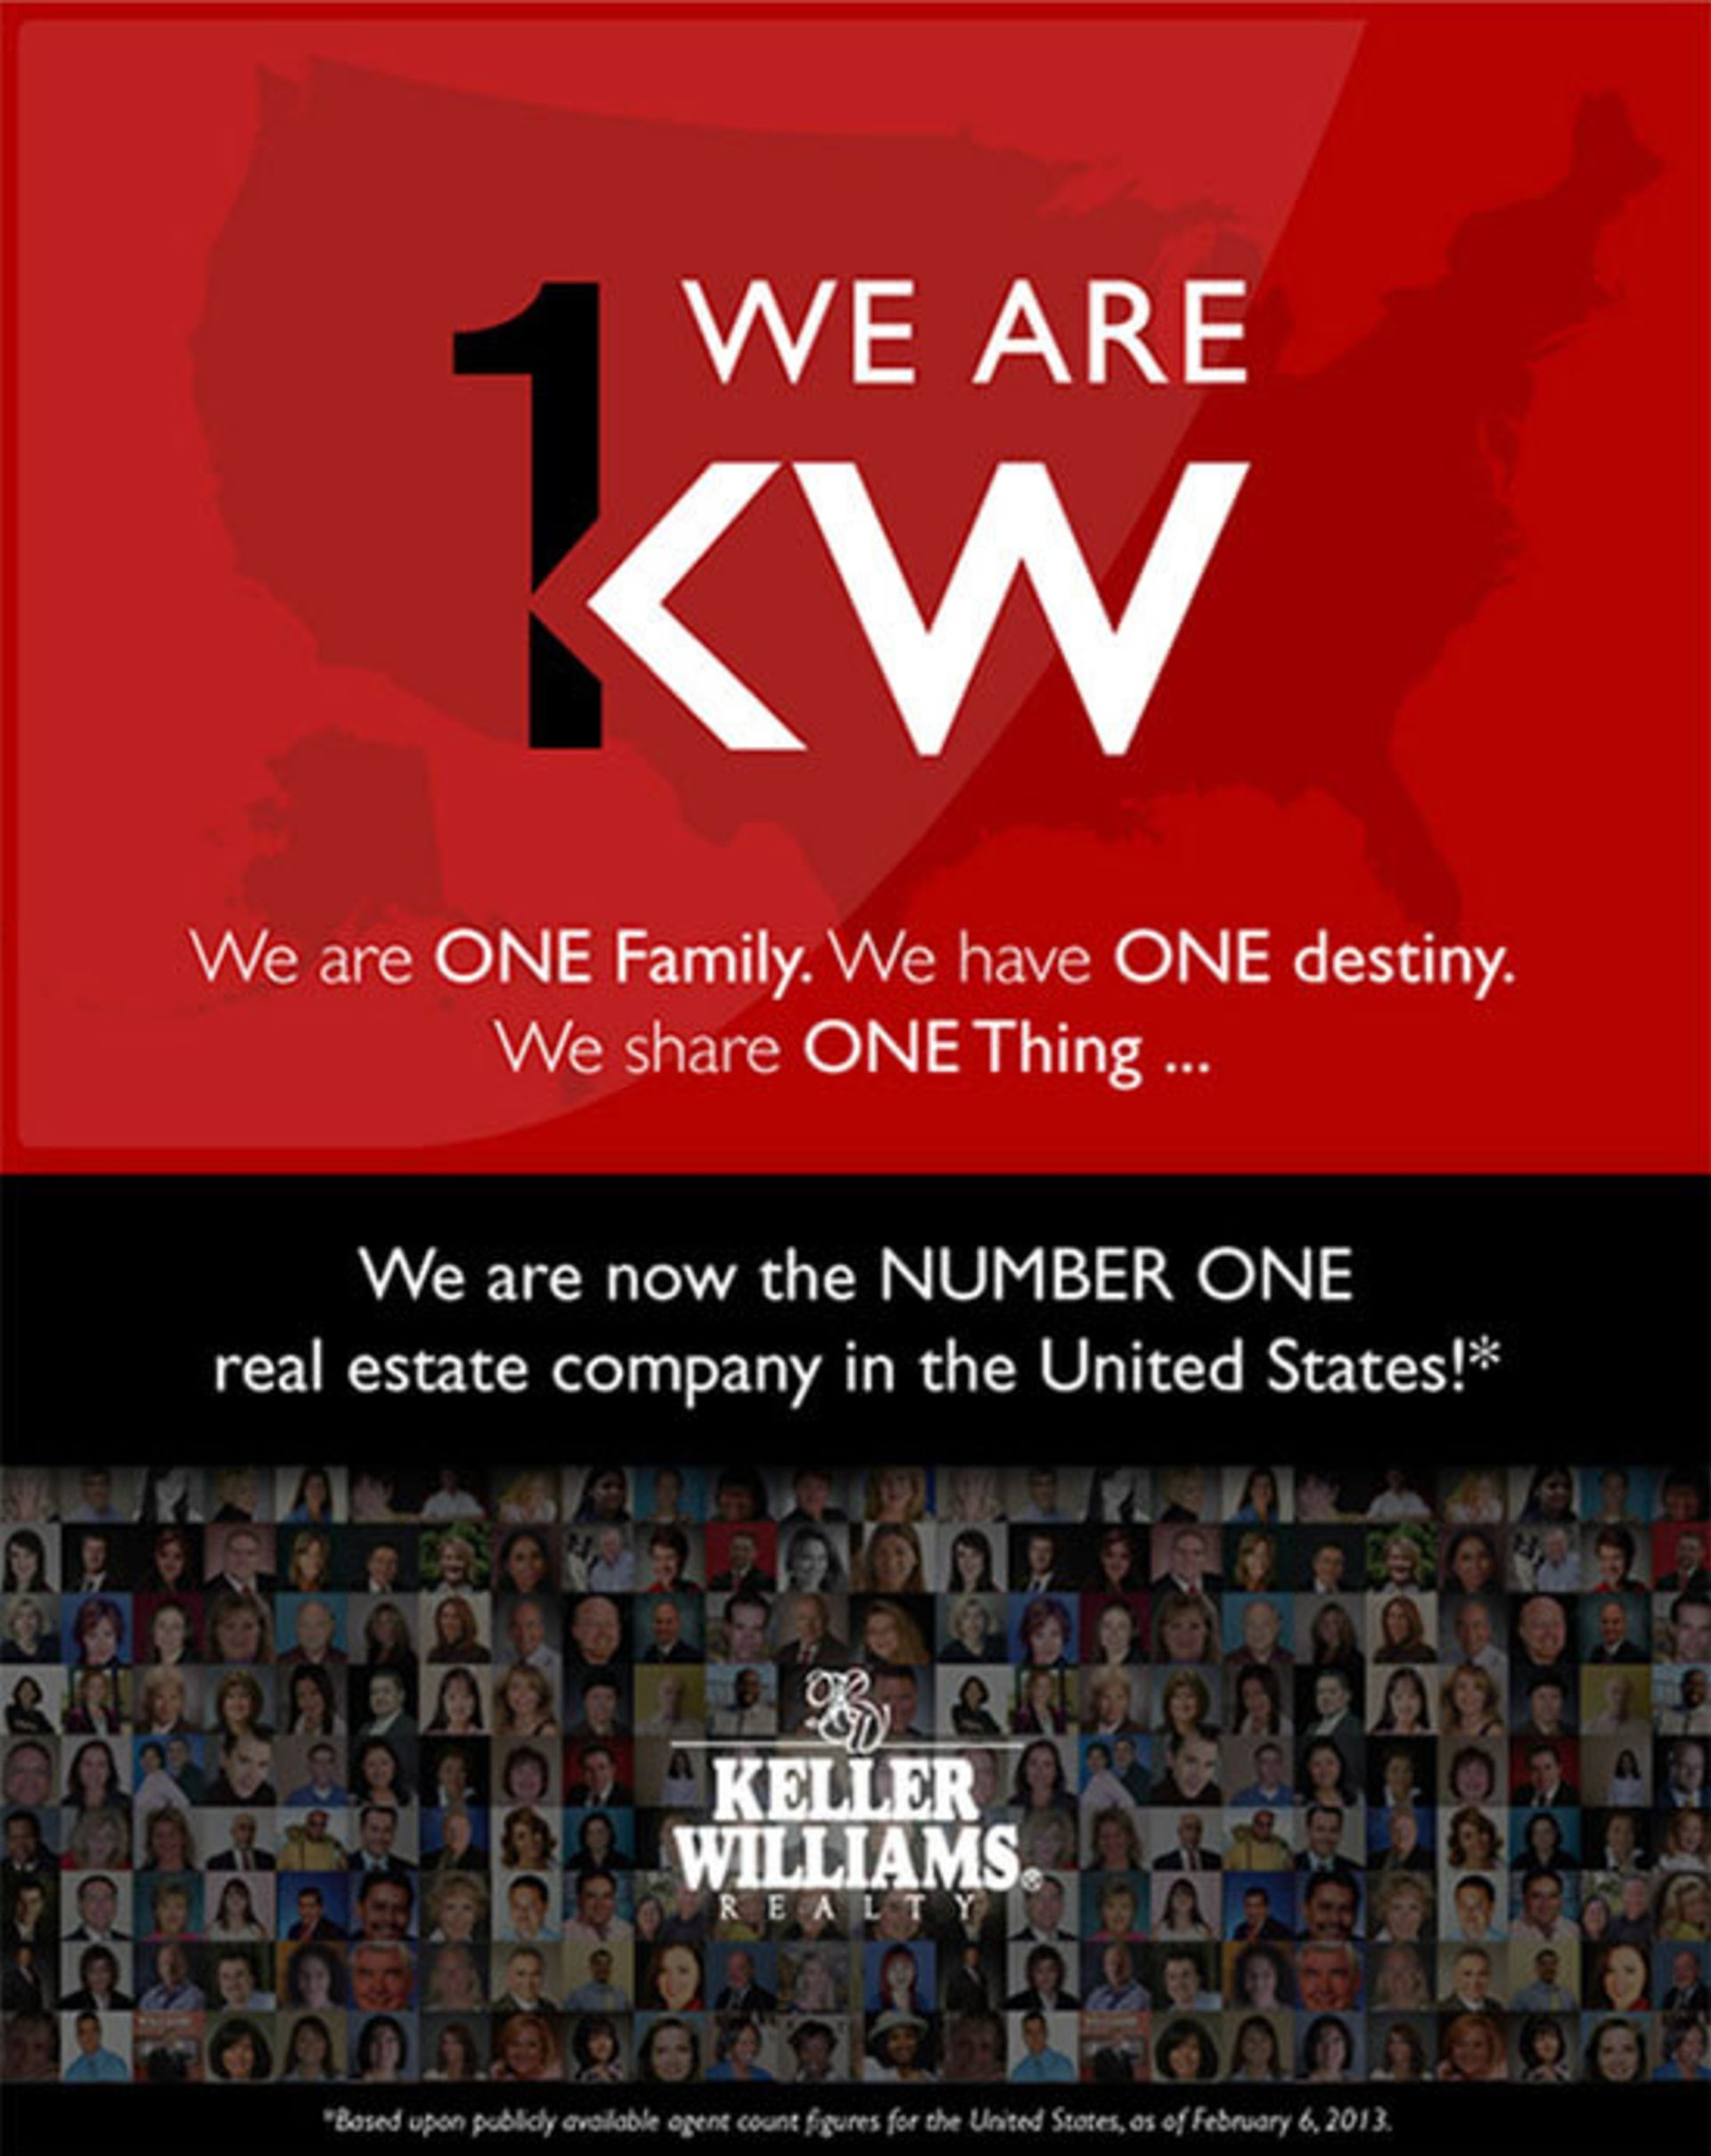 KW is Number One in Education